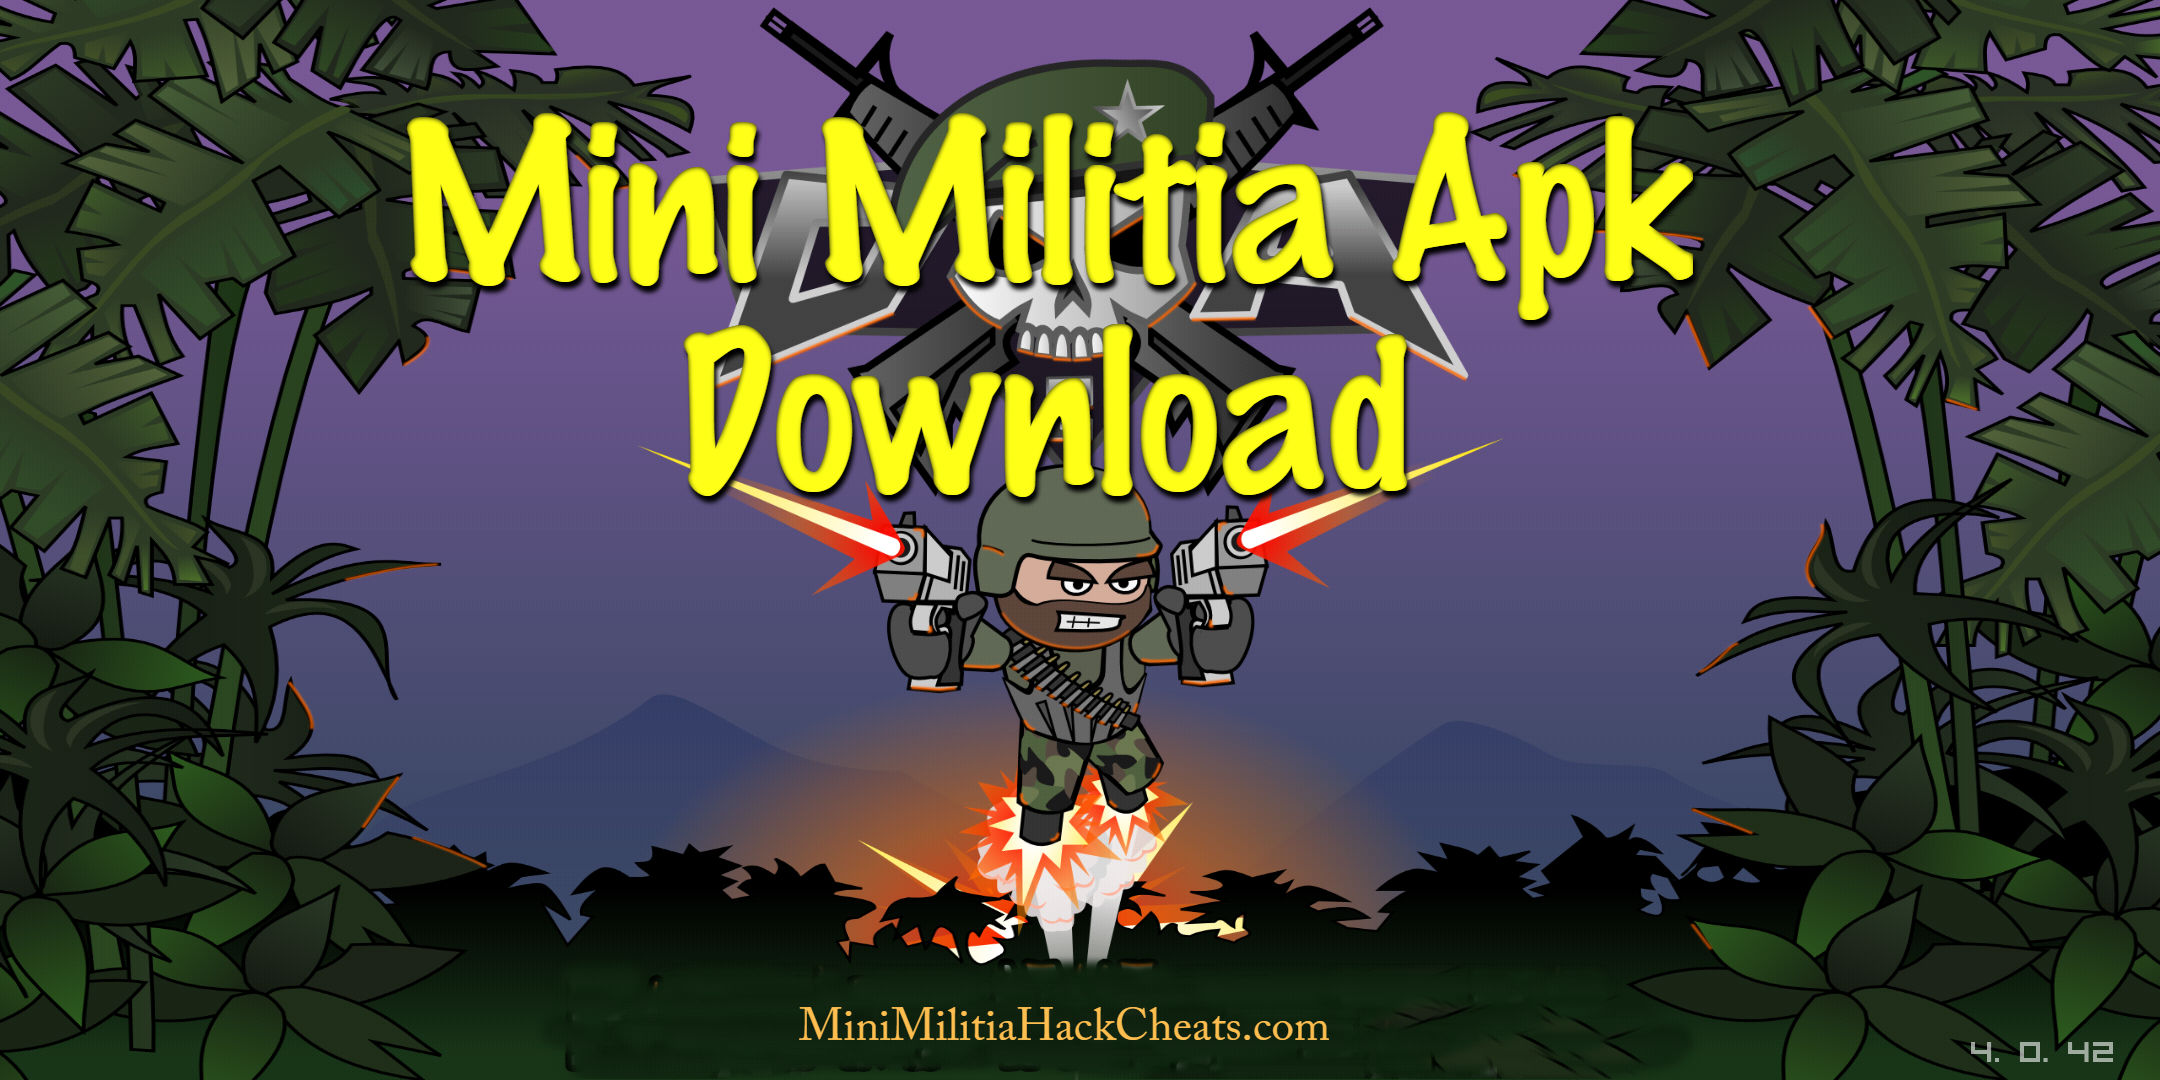 Mini Militia 4.0.42 APK Download for Android (Doodle Army 2)